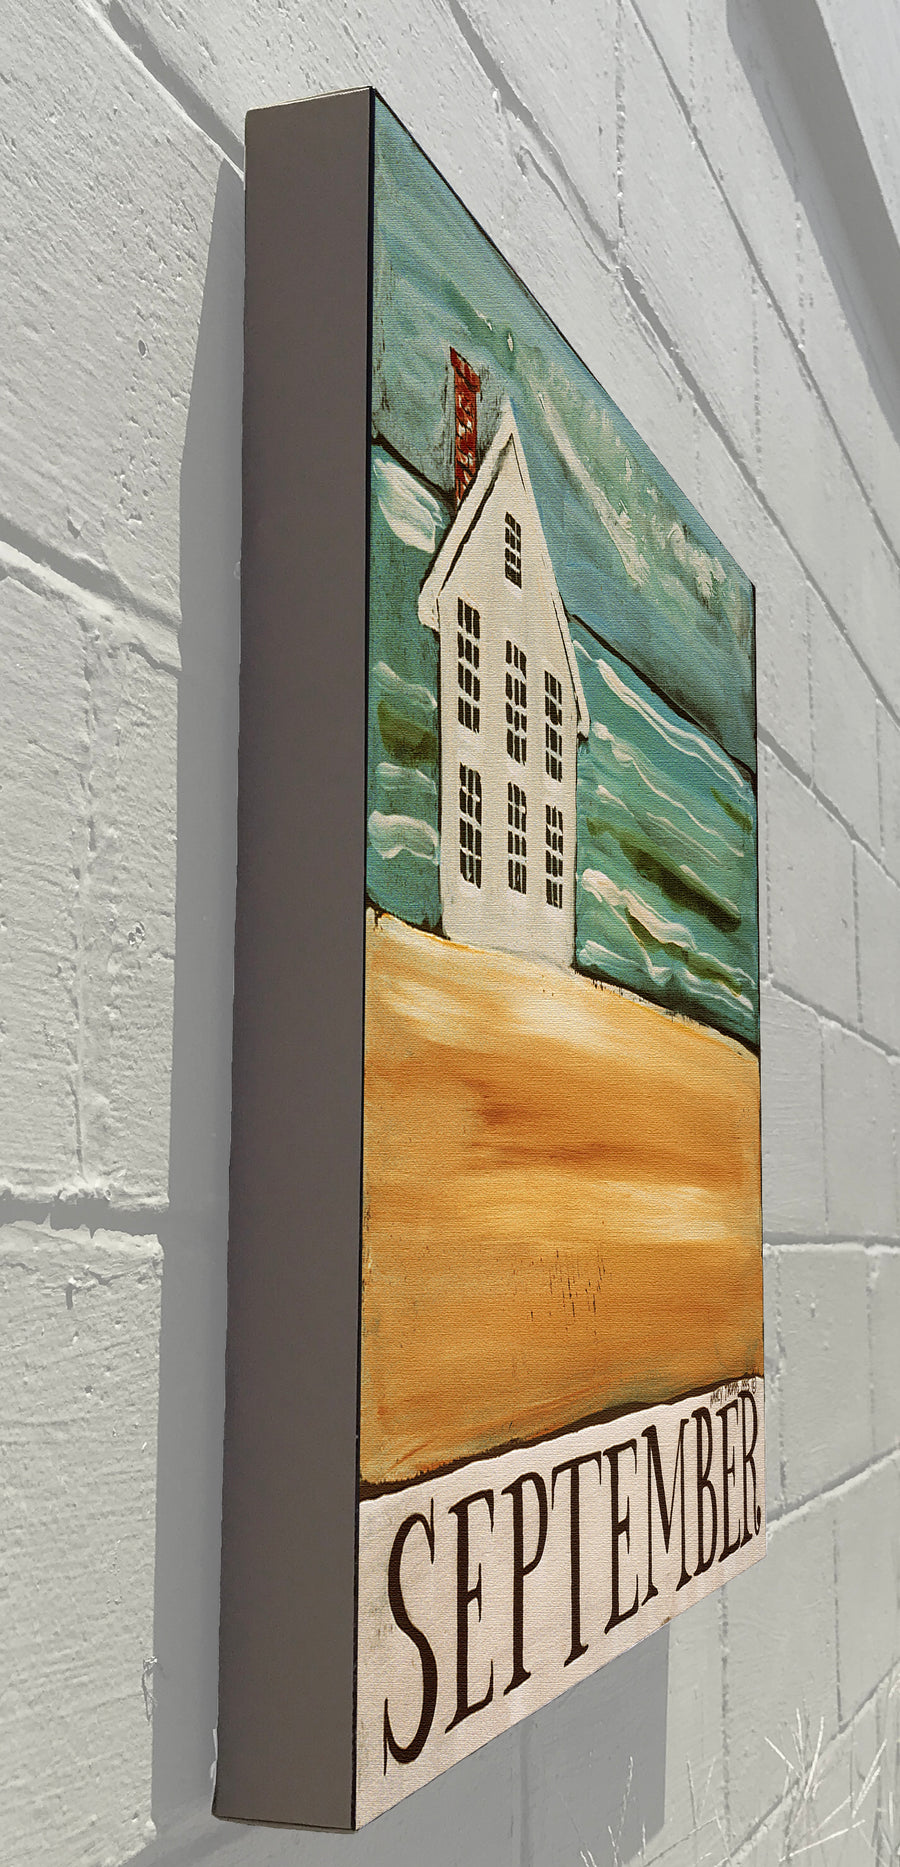 Gallery Canvas - September House - Original Month Series